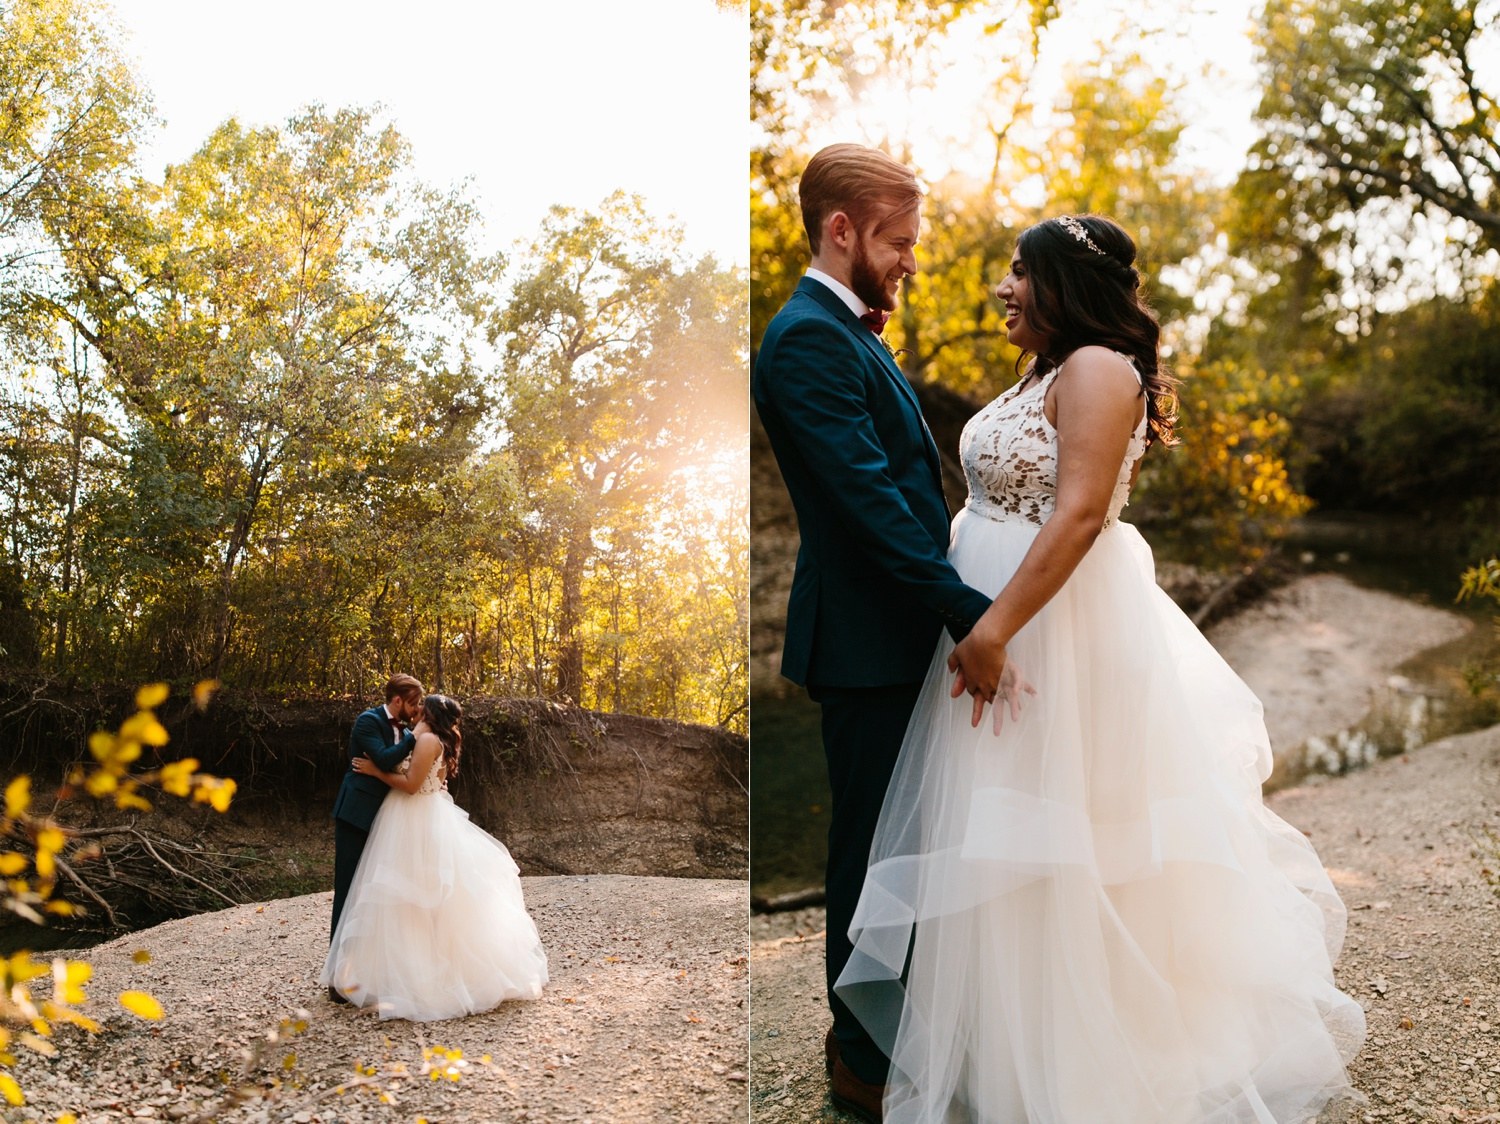 Grant + Lysette | a vibrant, deep burgundy and navy, and mixed metals wedding at Hidden Pines Chapel by North Texas Wedding Photographer Rachel Meagan Photography 199